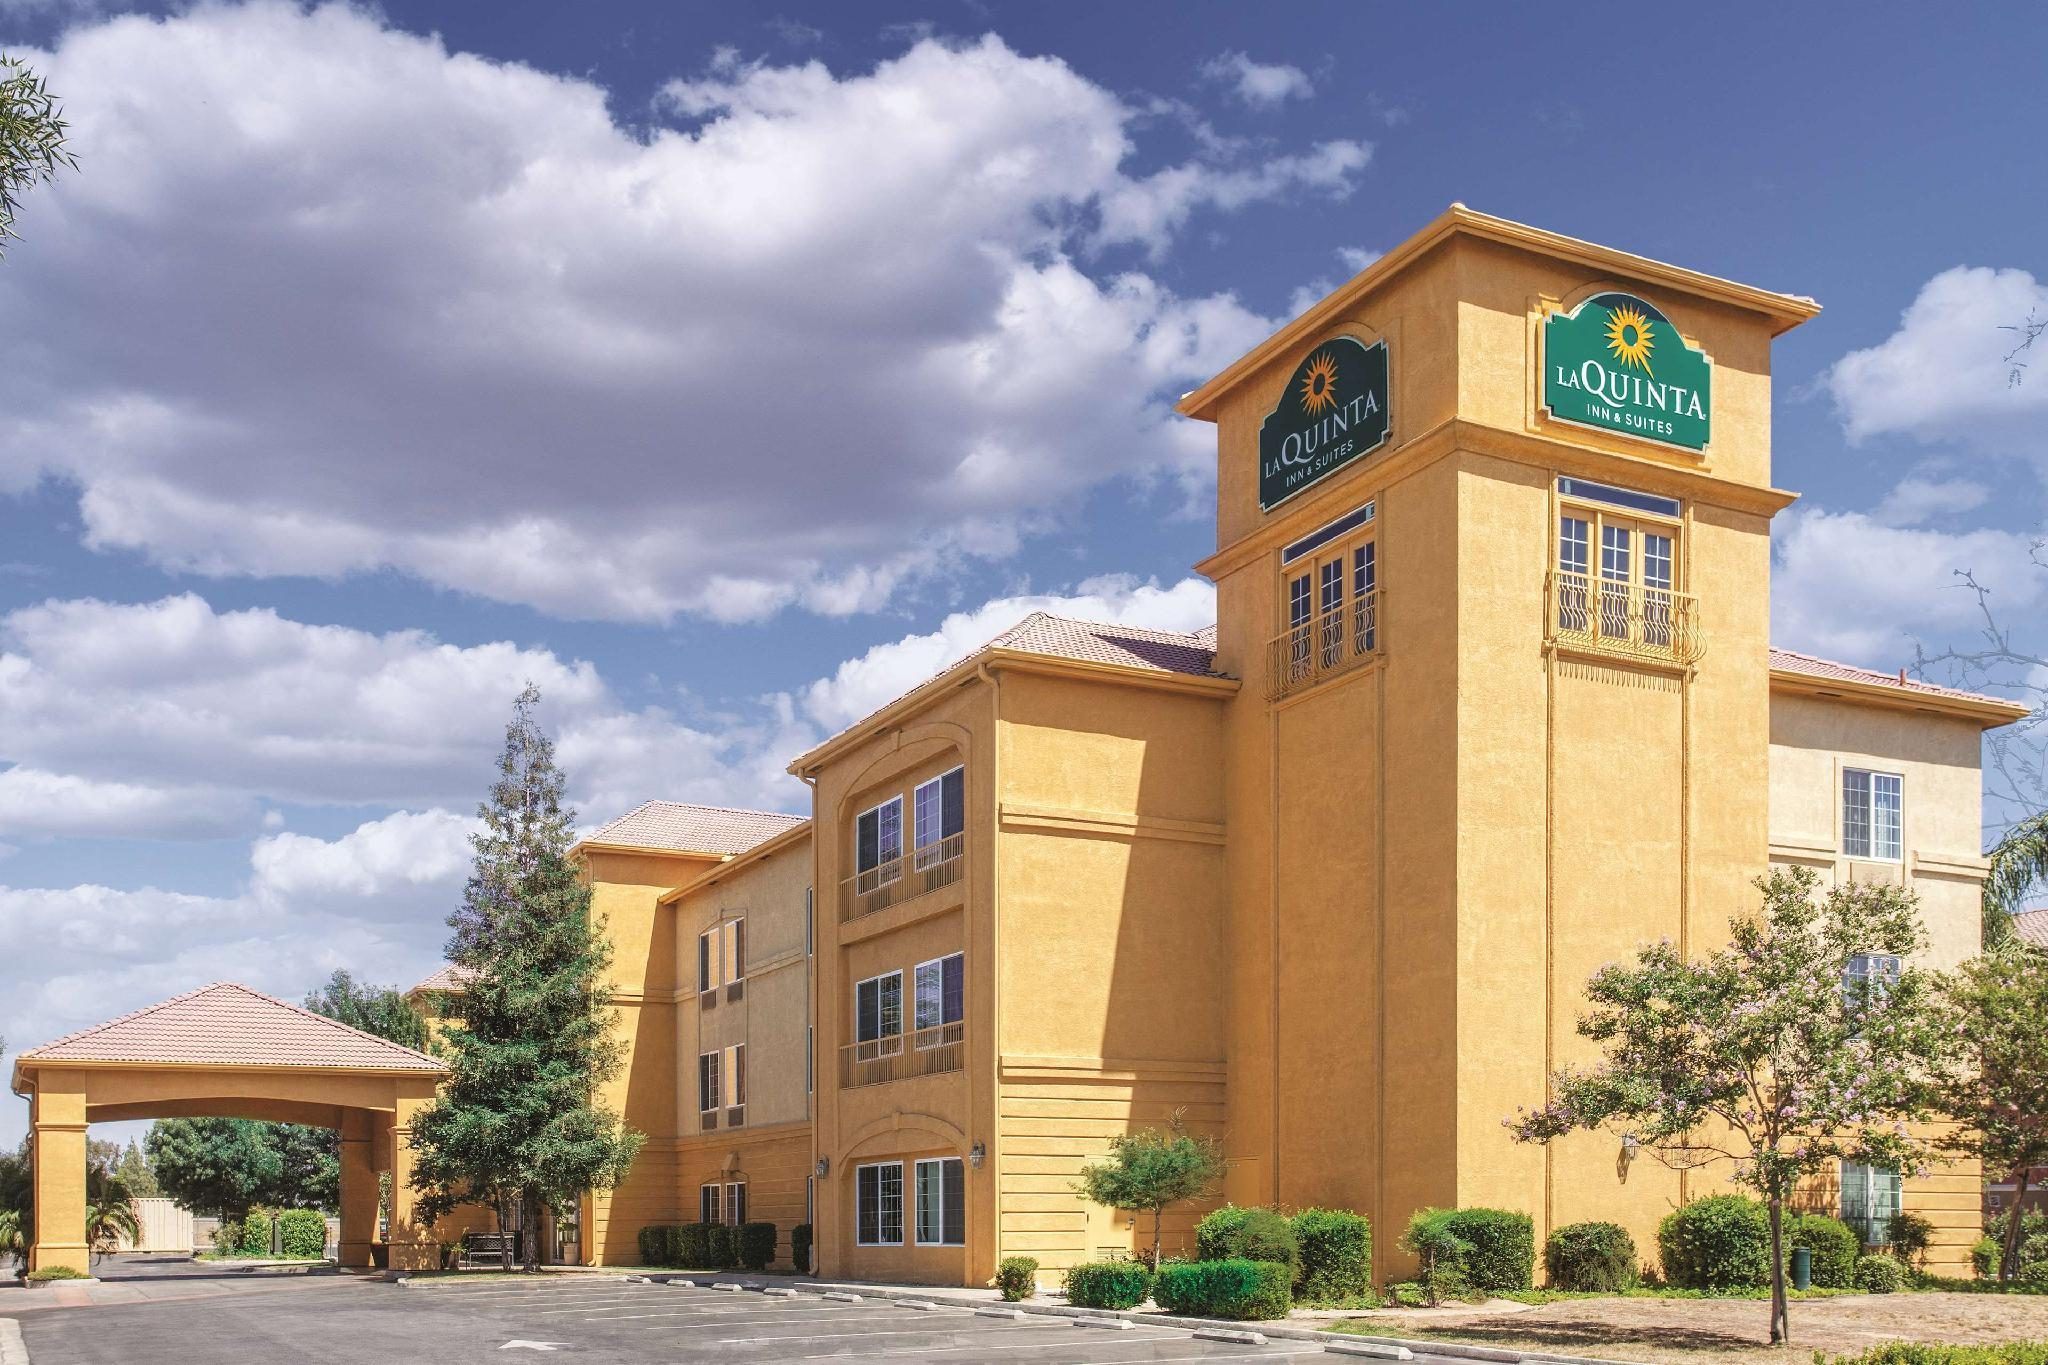 La Quinta Inn And Suites By Wyndham Bakersfield North